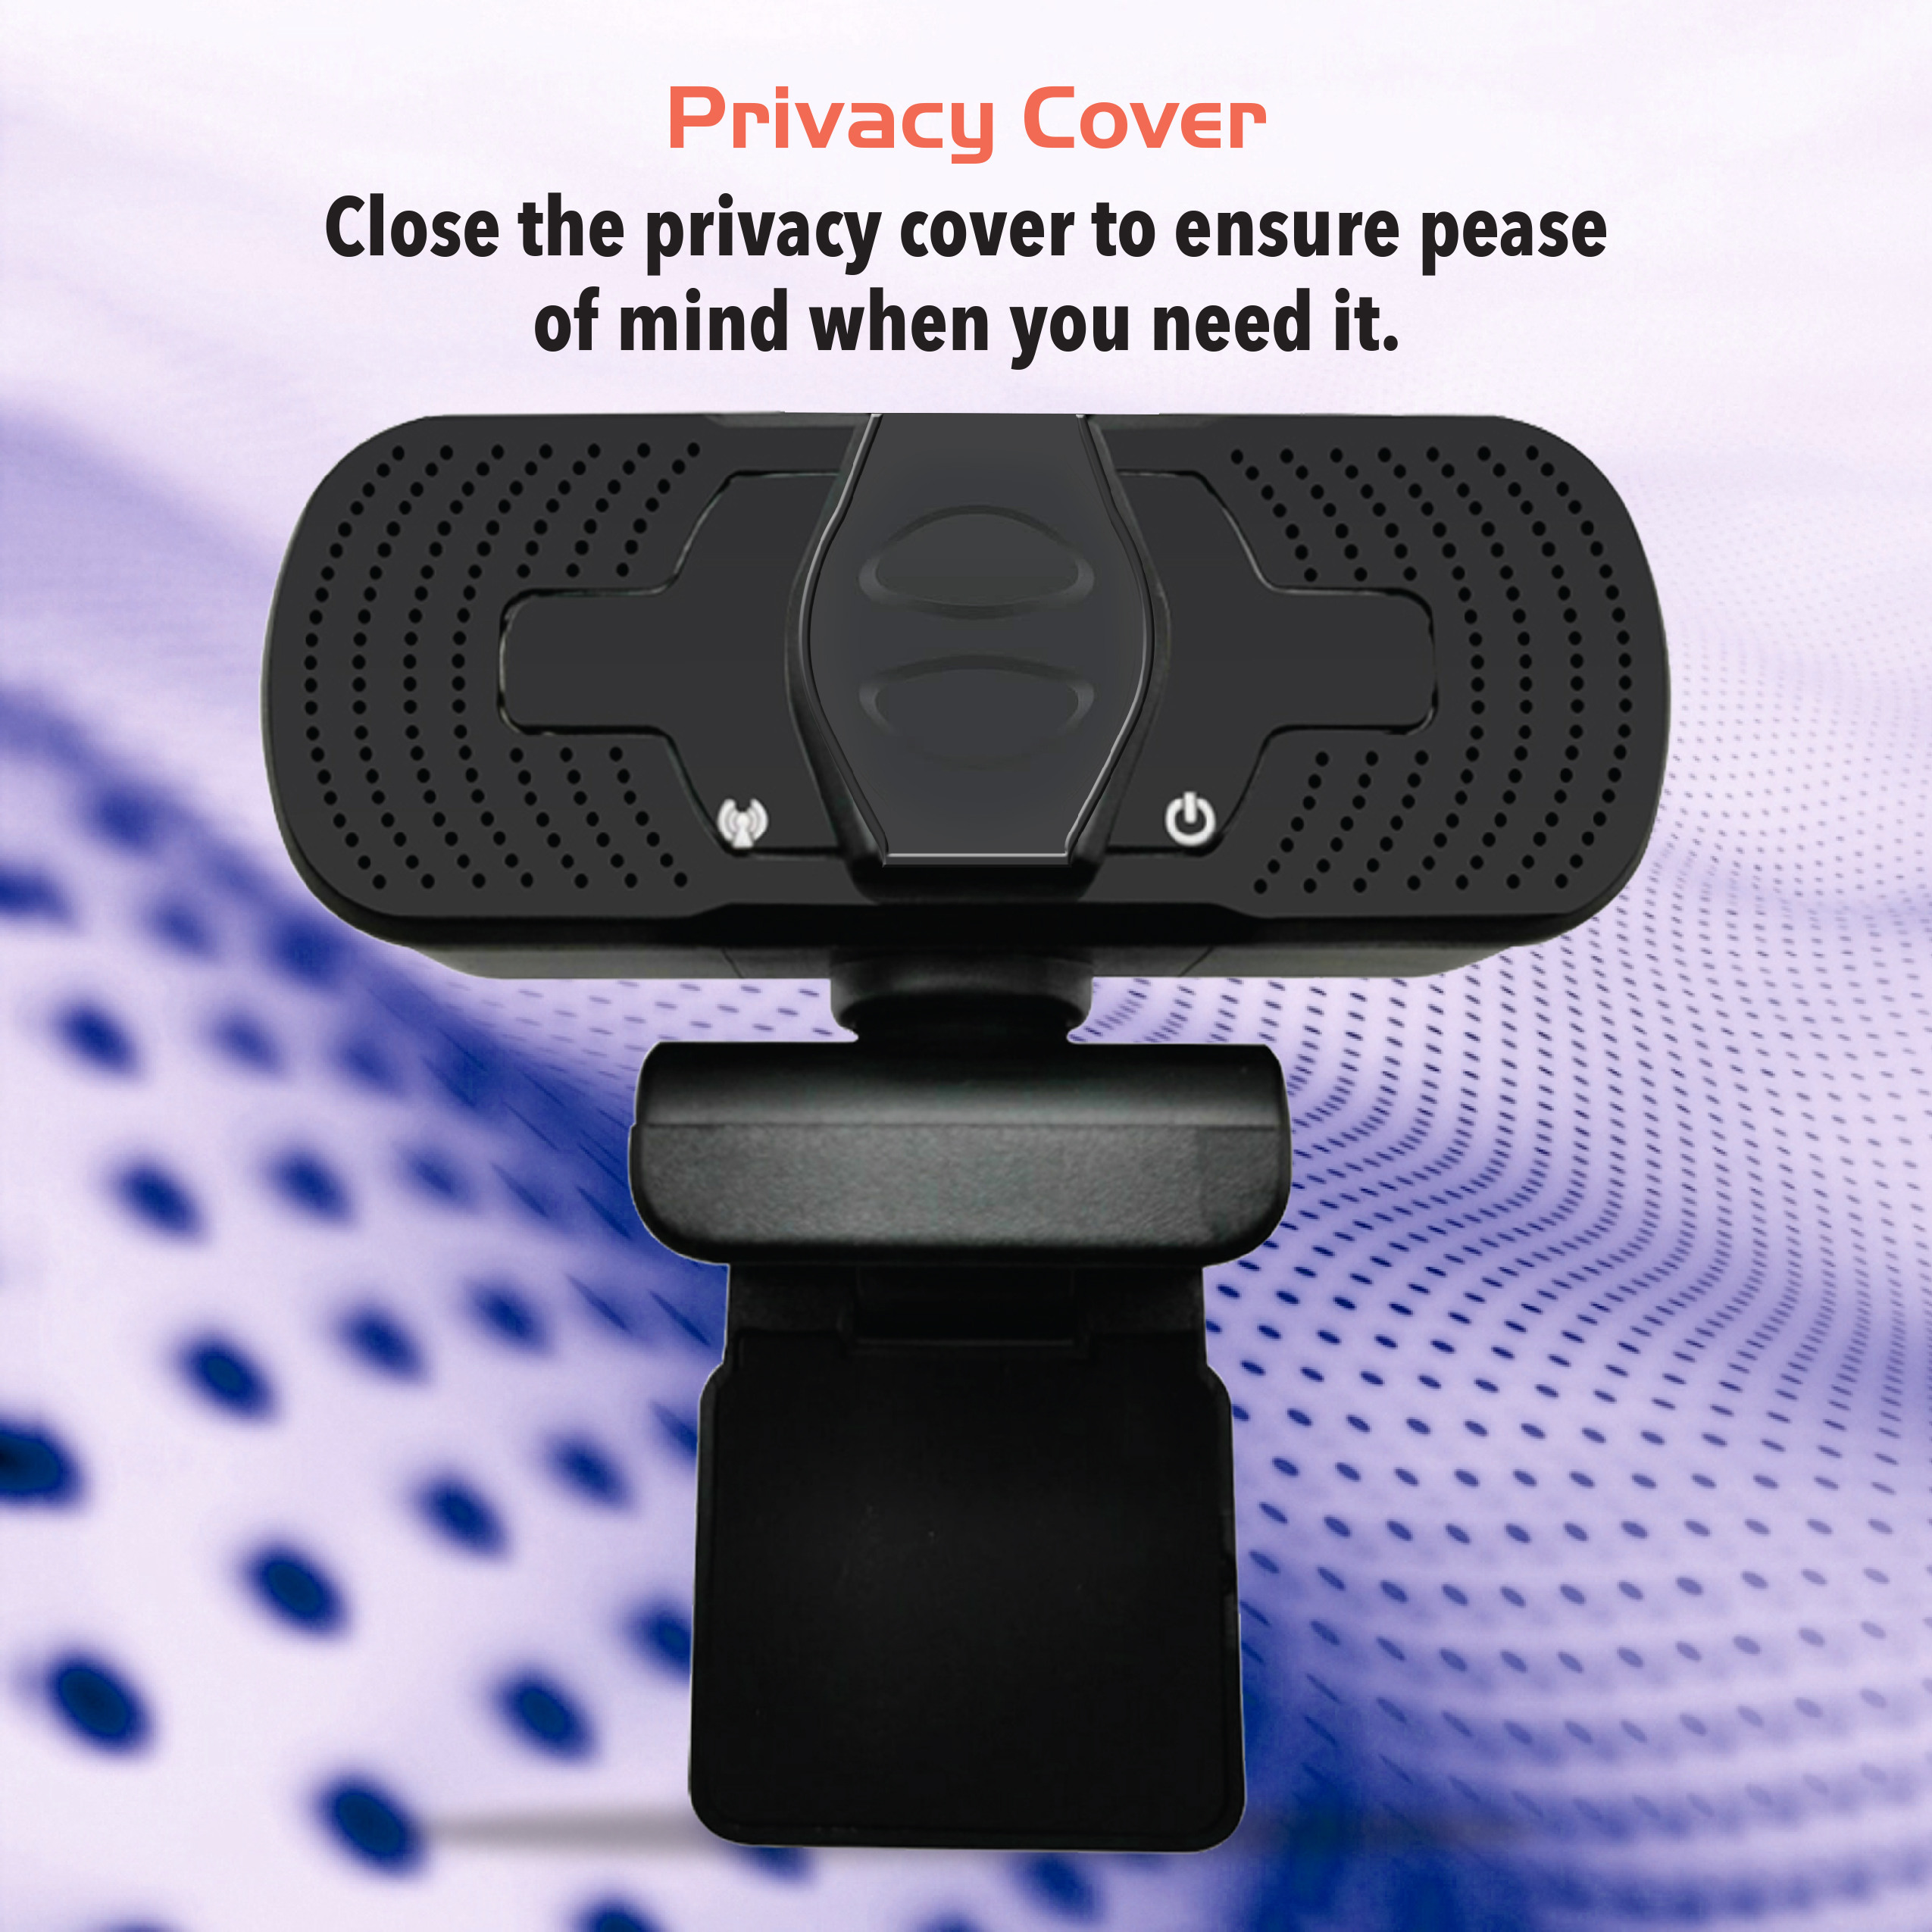 YESKAMO 1080P Webcam with Microphone /& Privacy Cover USB Webcams 360/° Rotation for Desktop Wide angle 110 degree Computer cameras Web Cameras for Laptop Compatible with Windows Mac Android